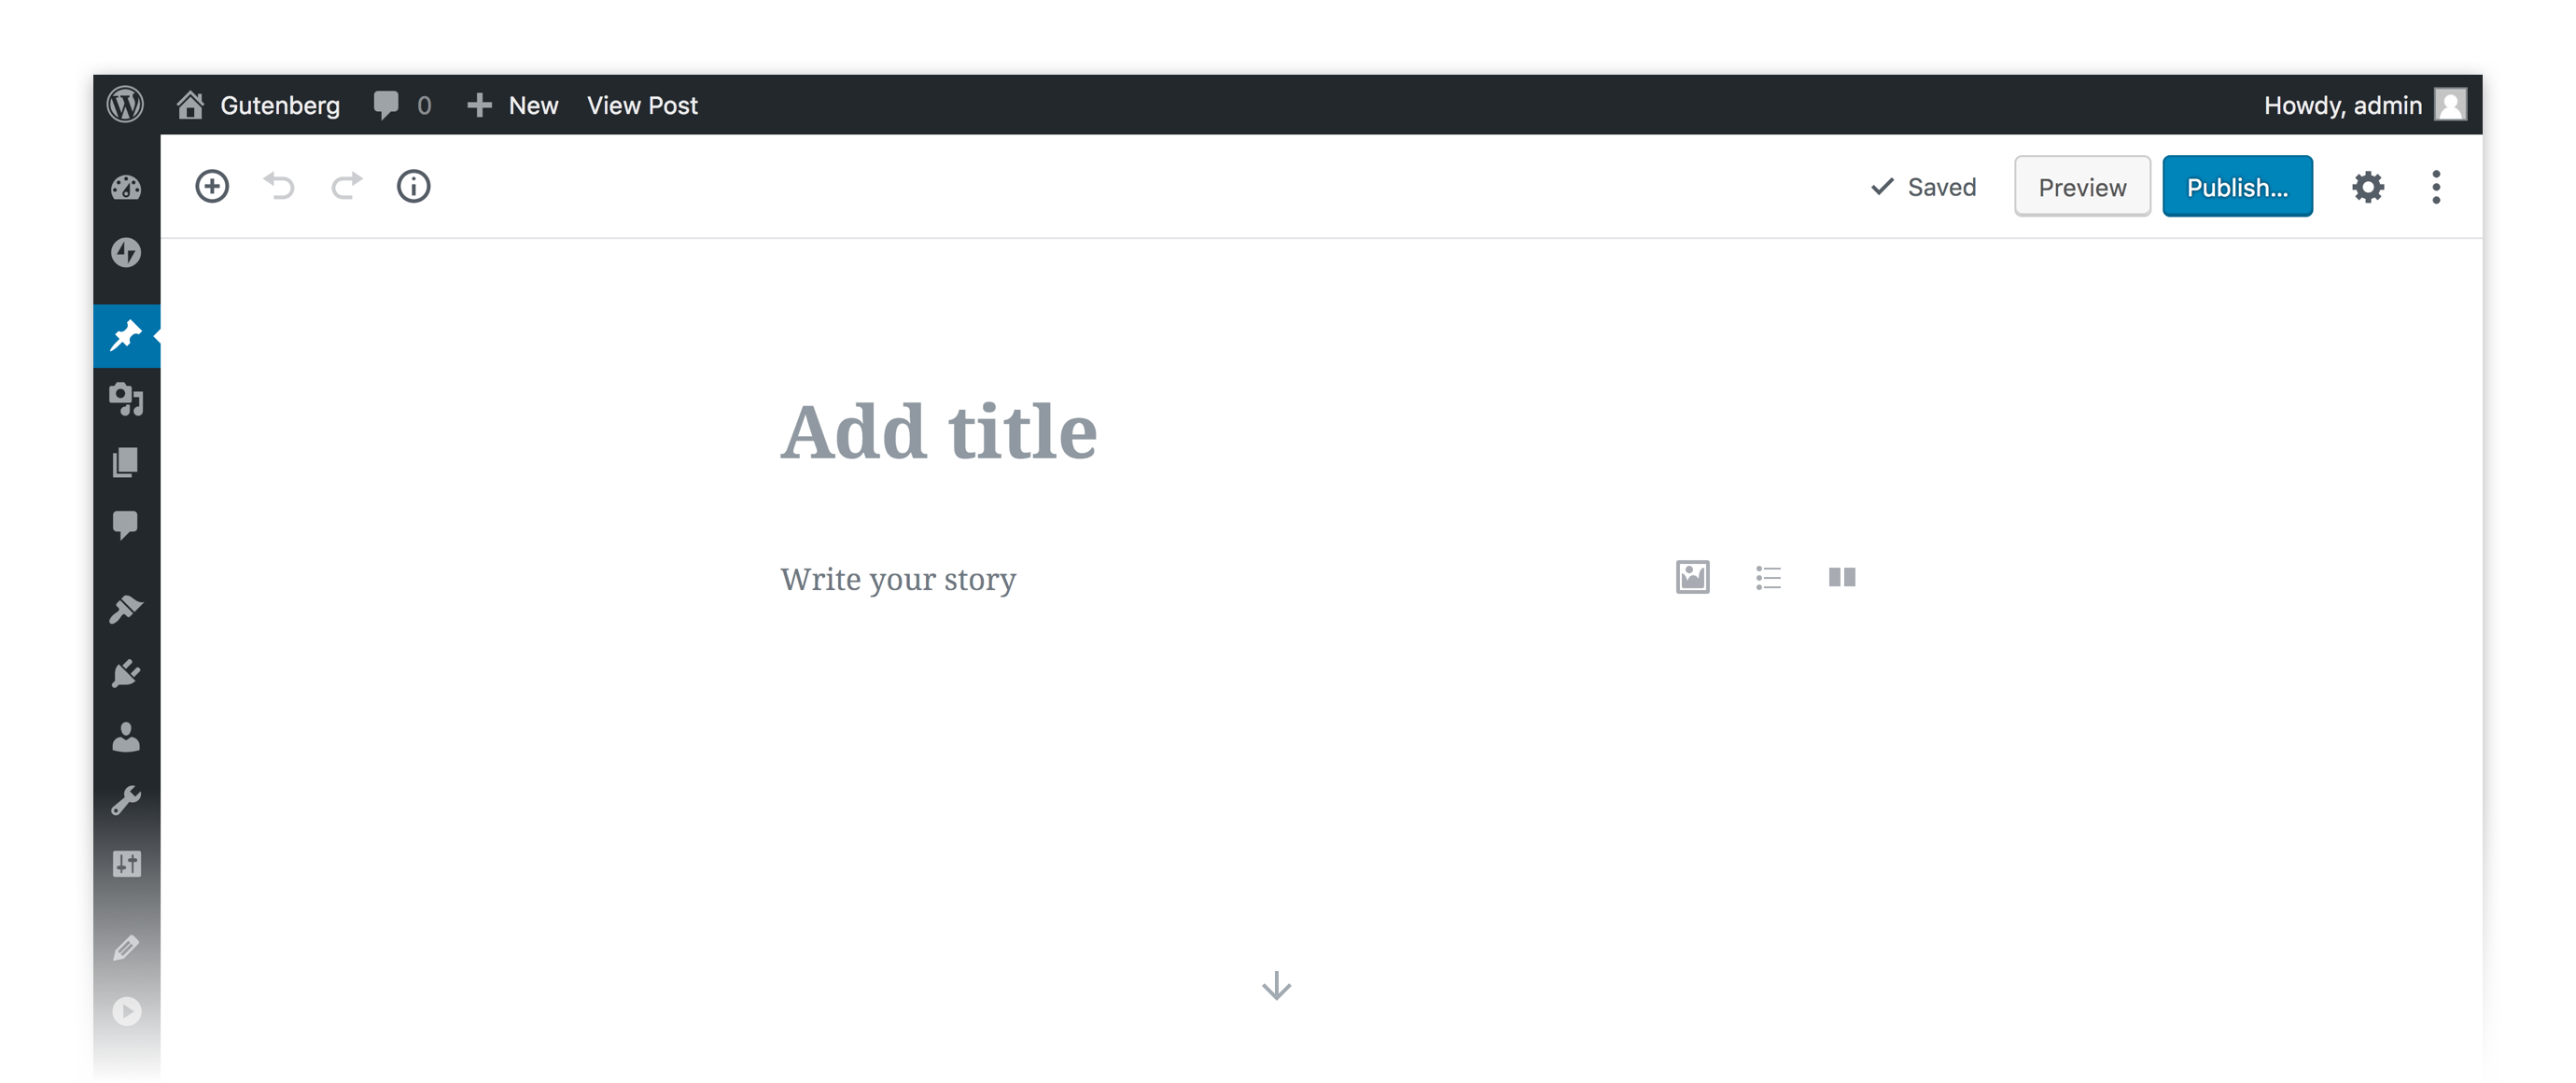 A screenshot appears, displaying the basic Gutenberg editor in WordPress.